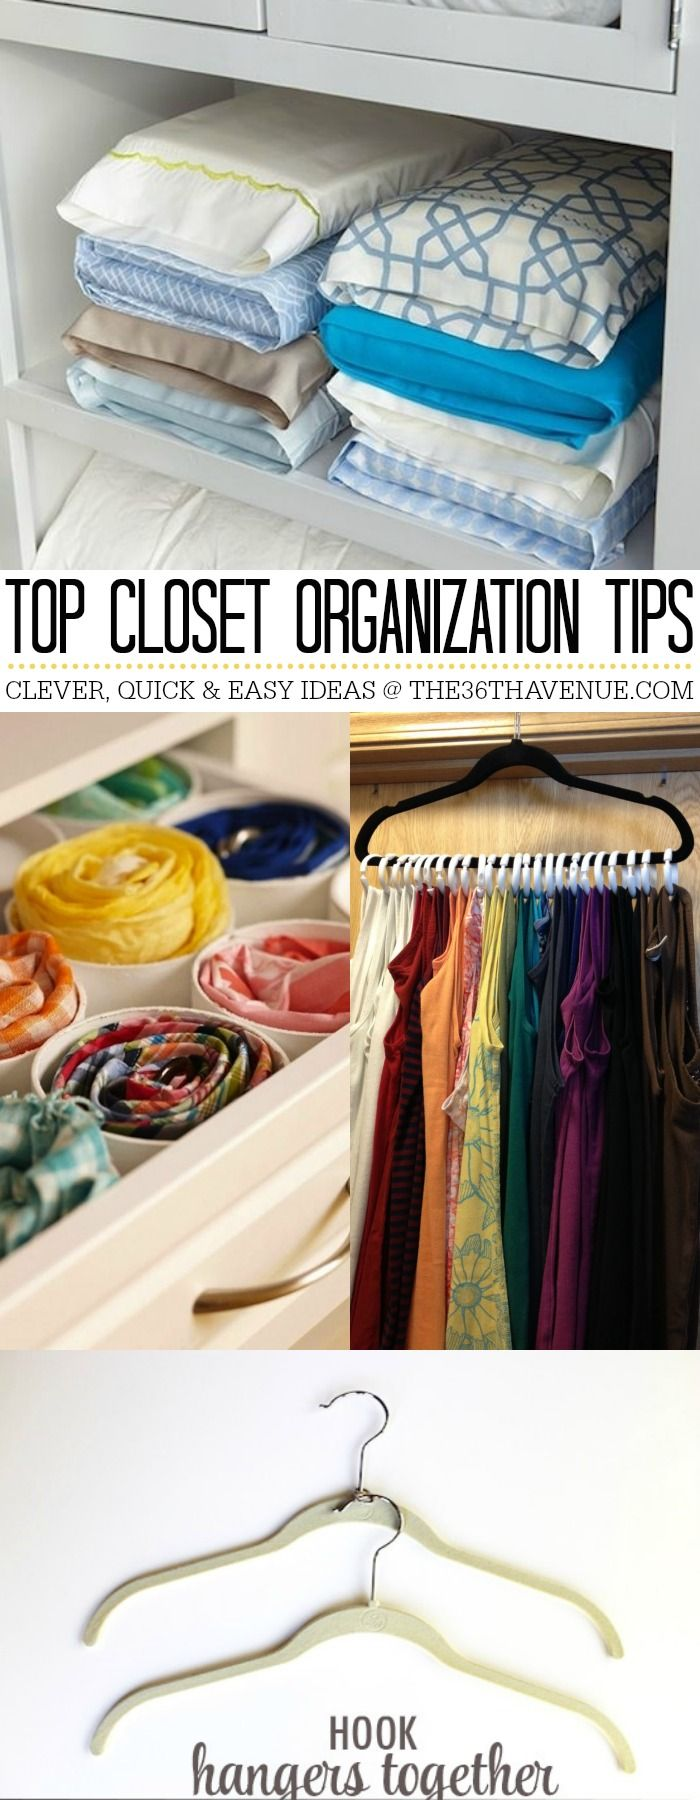 Closet Organization Tips that will make your life easier!